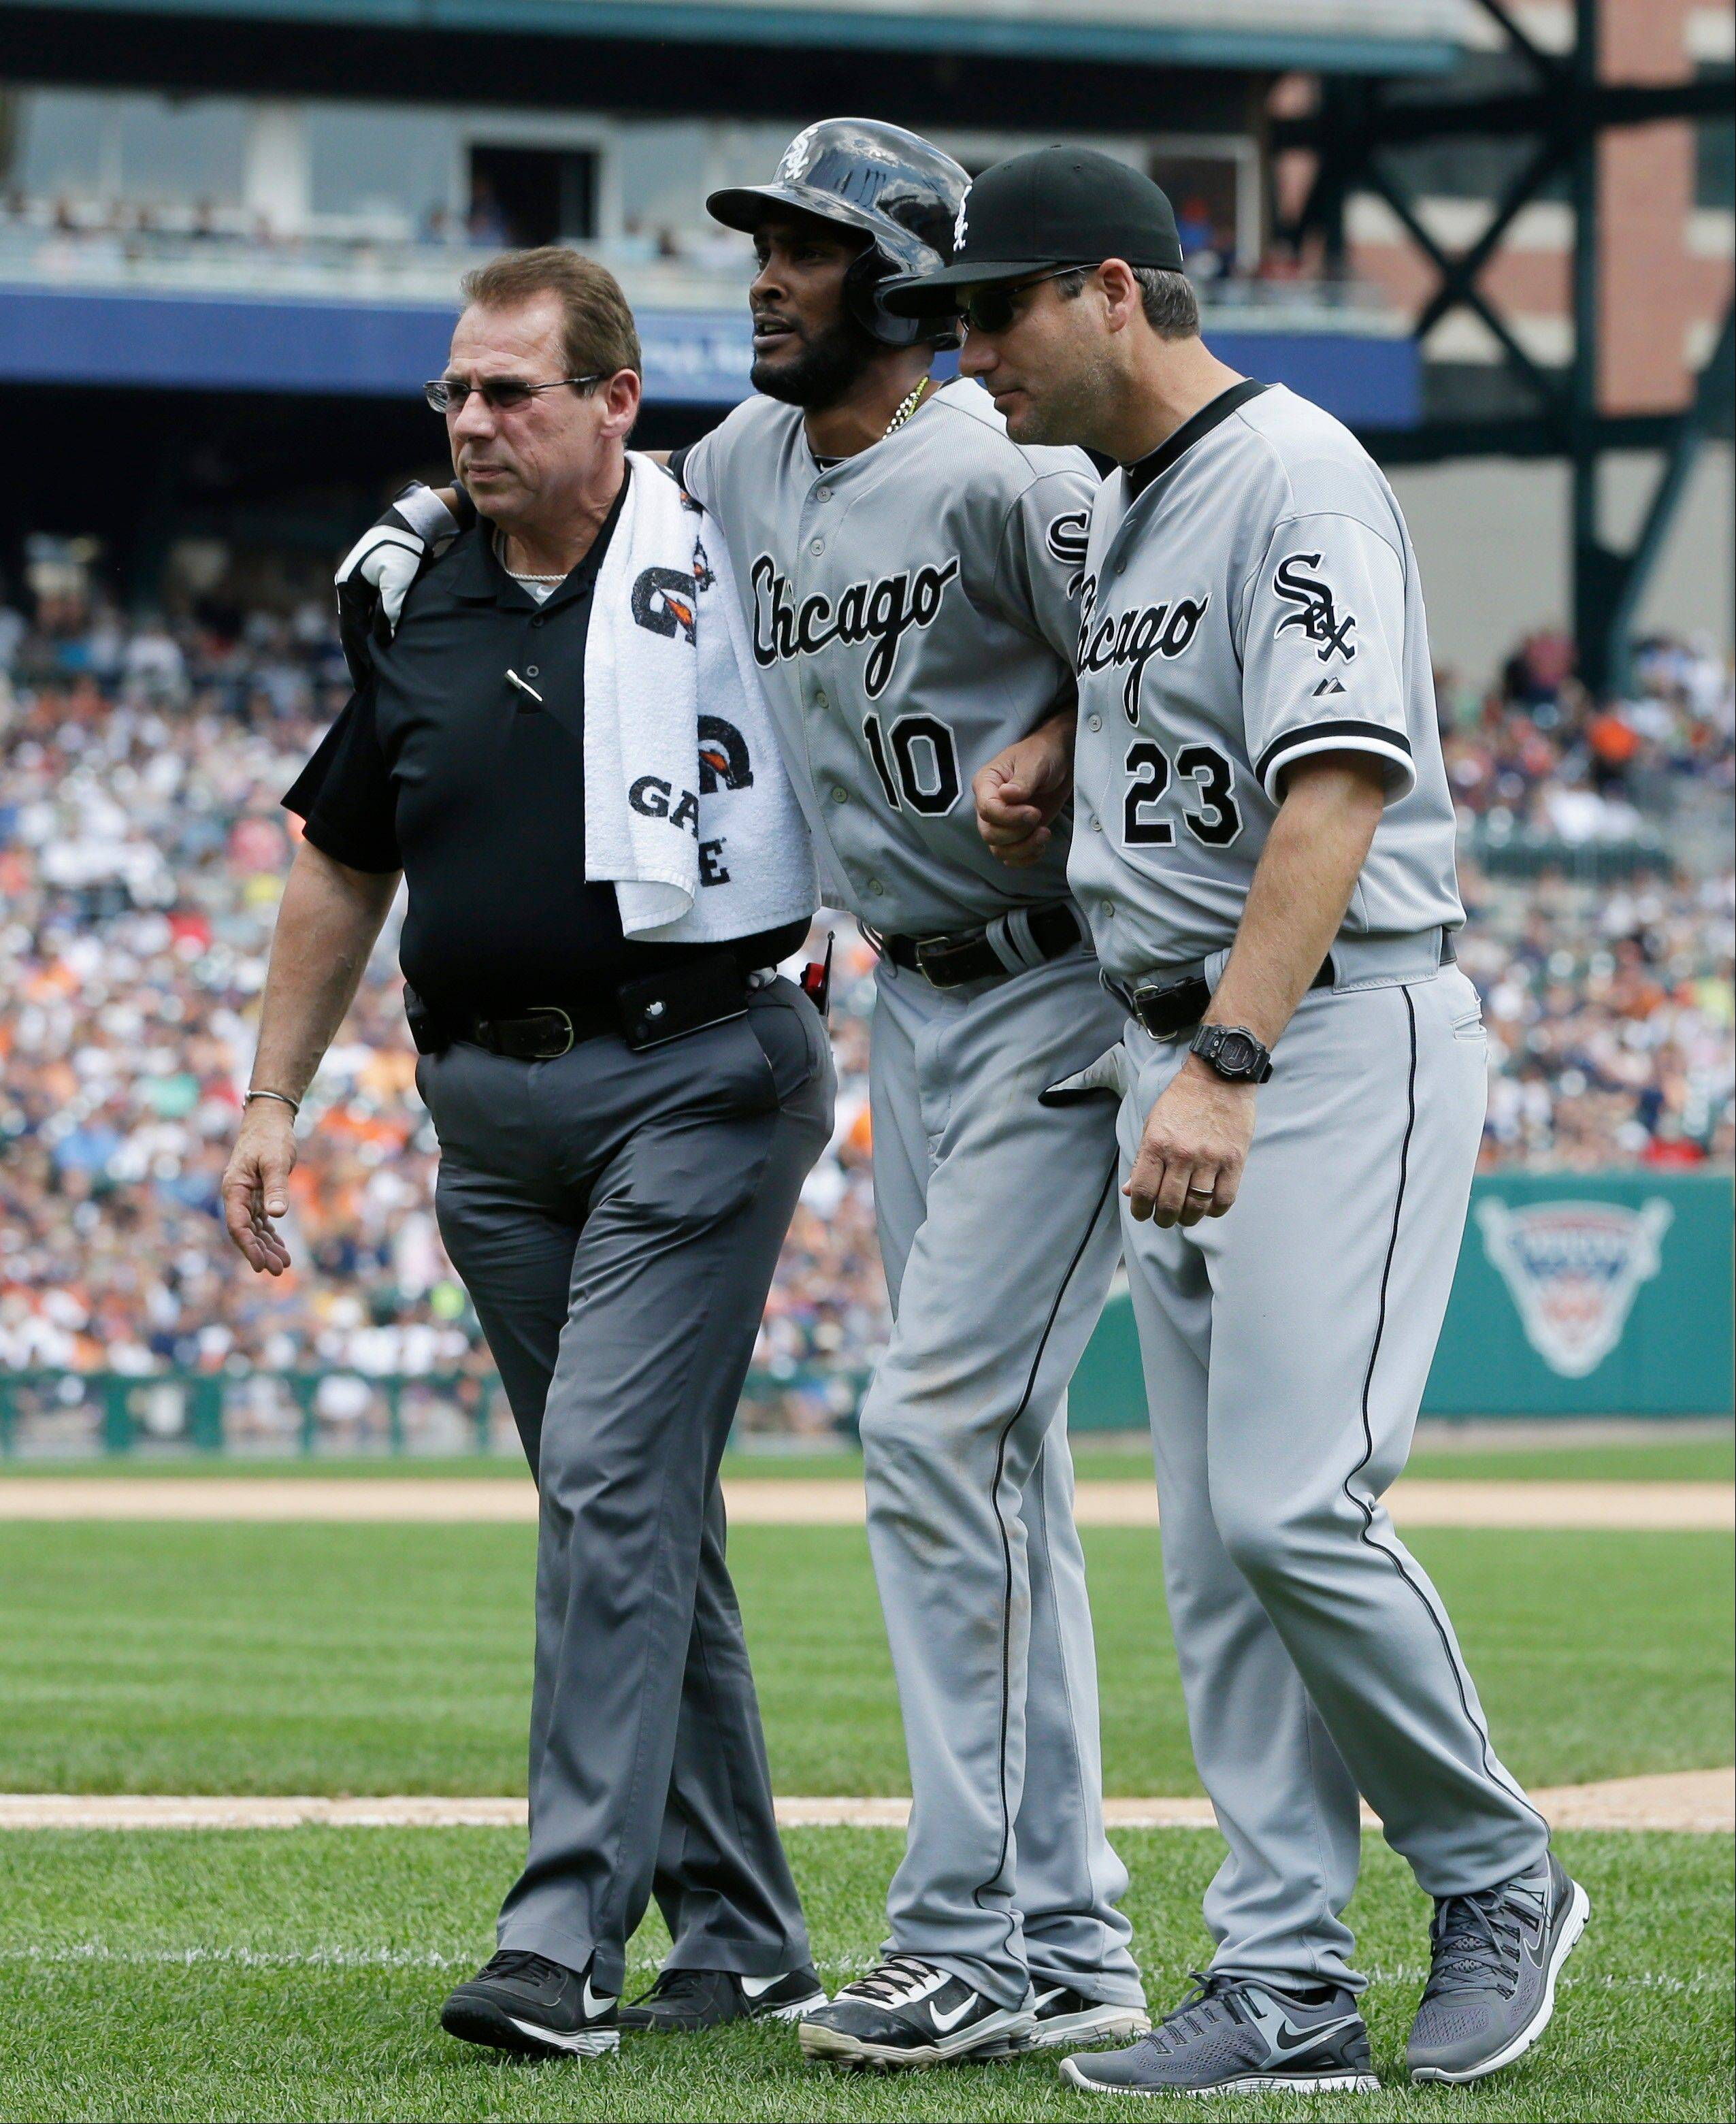 White Sox manager Robin Ventura, here helping shortstop Alexei Ramirez off the field during a game last week, has seen his team limp to a 37-55 record, the franchise's worst mark at the all-star break since 1989.